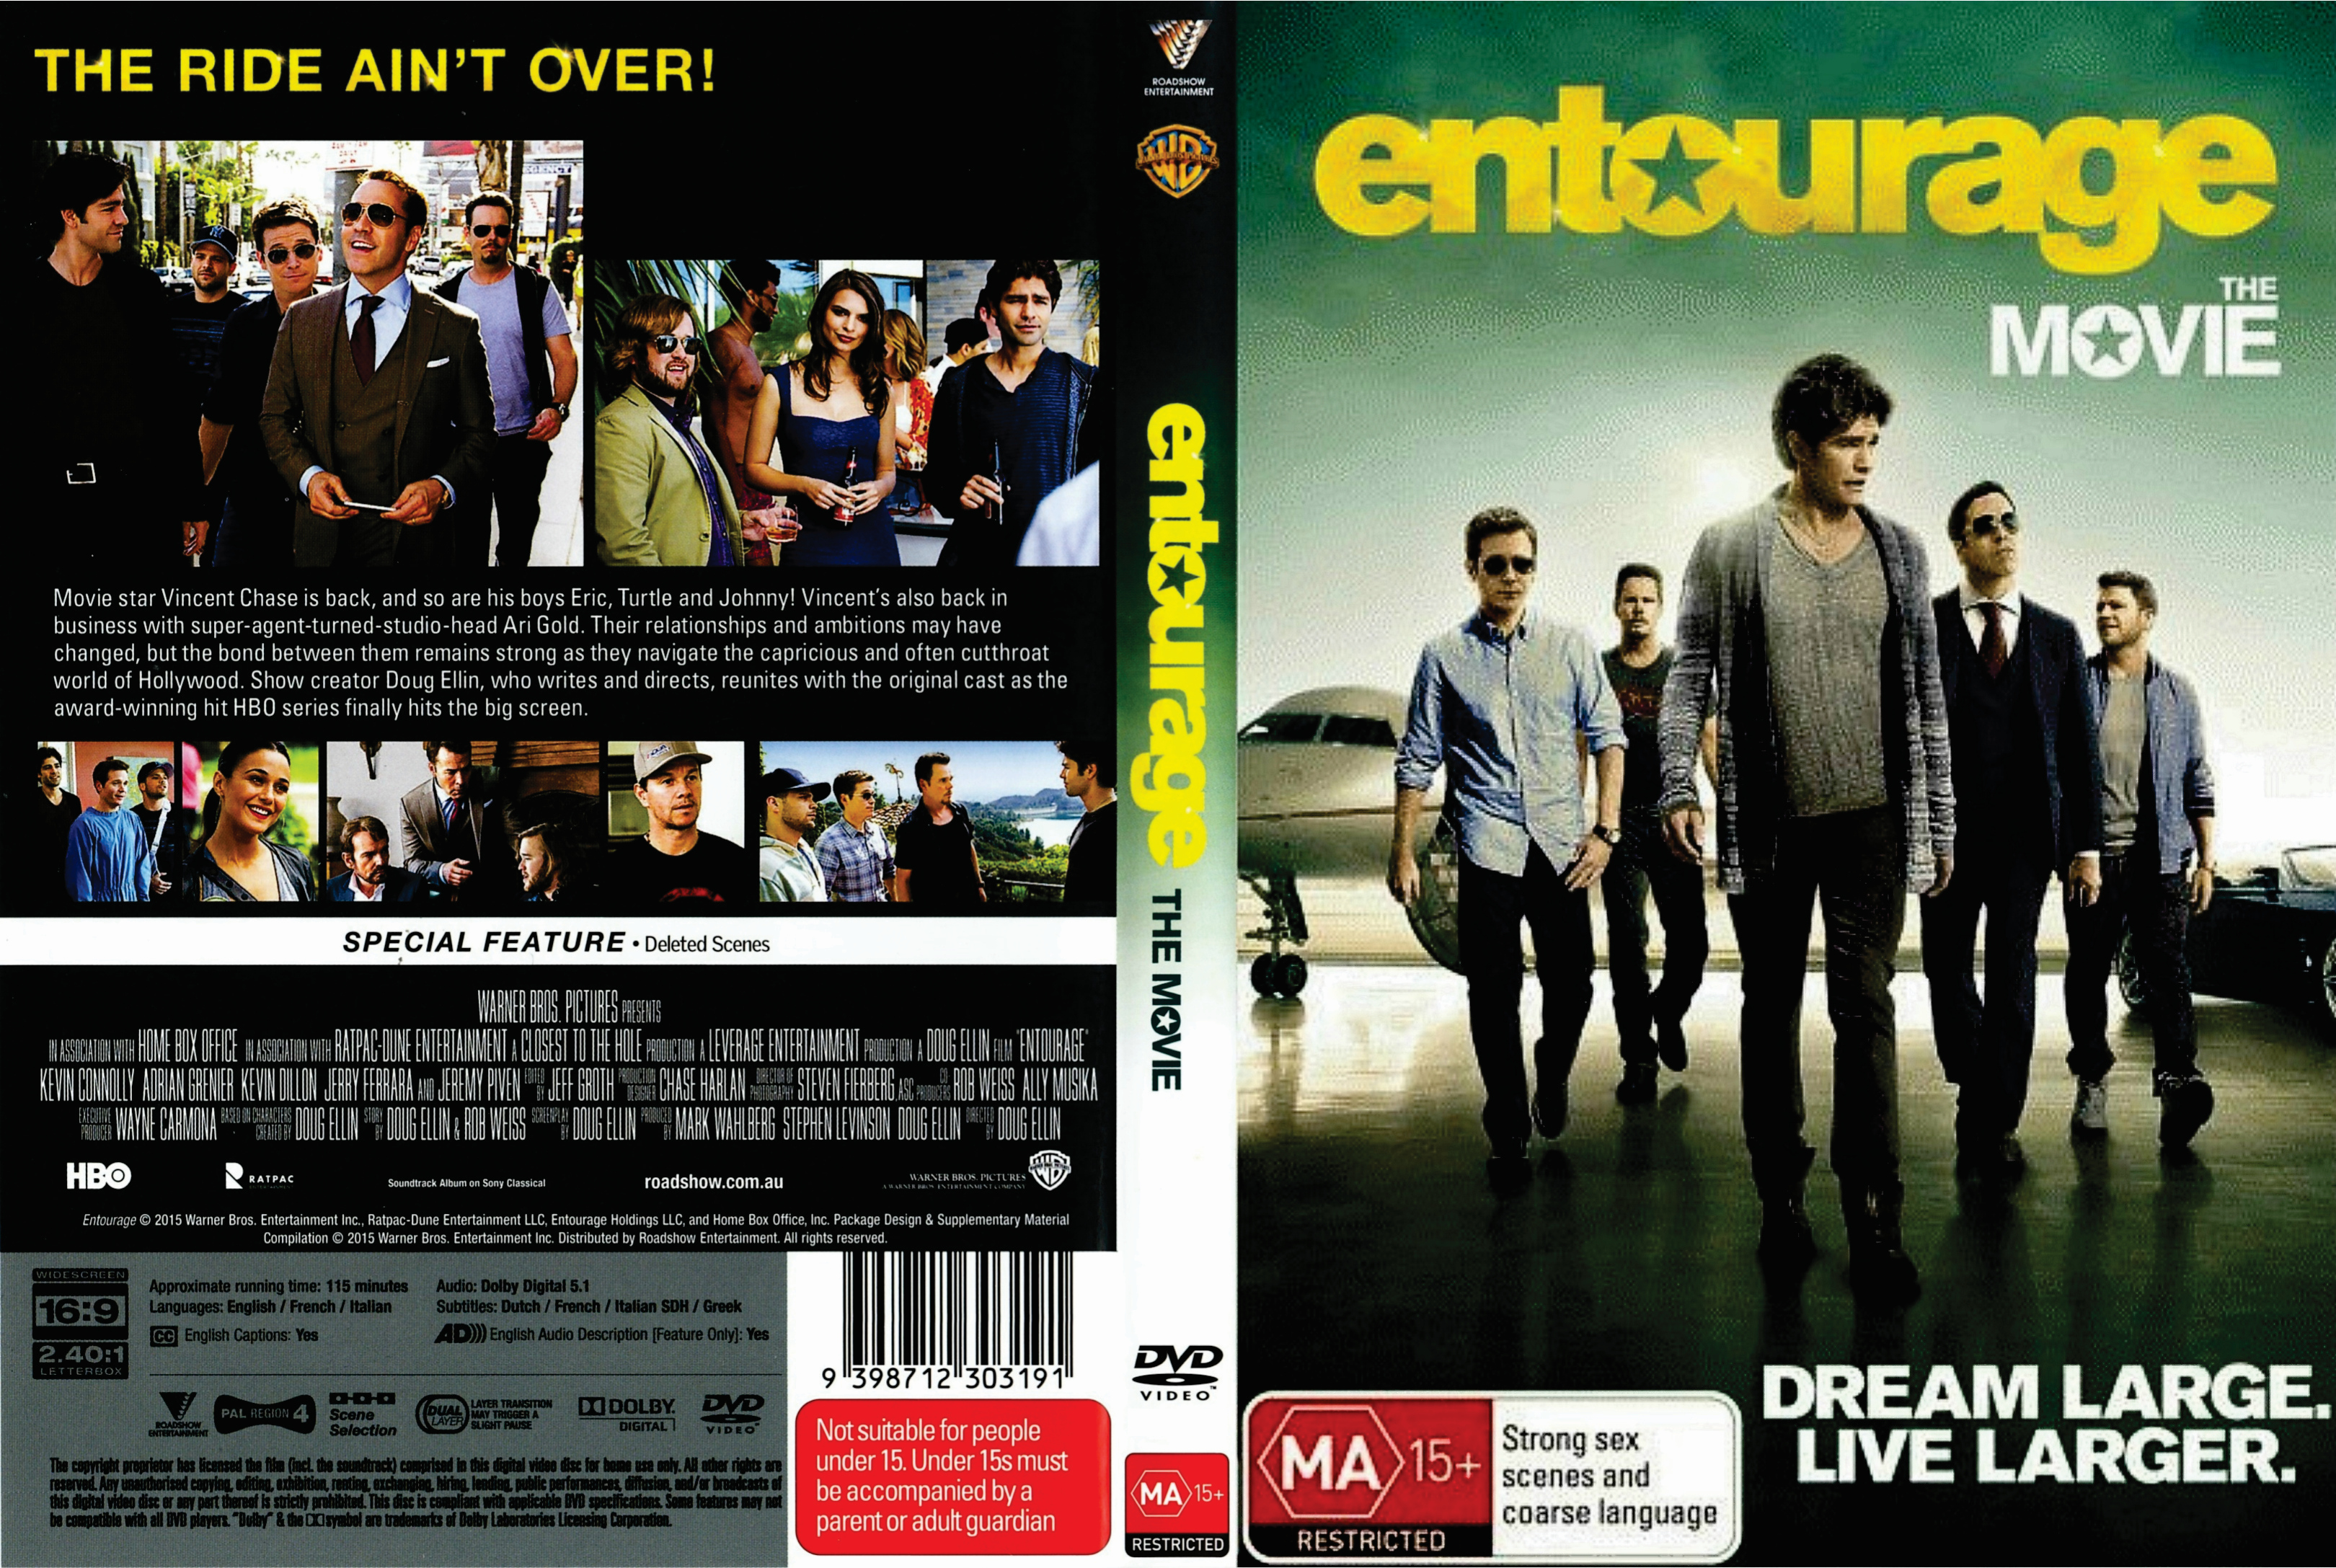 entourage the movie 2015 r4 front dvd covers cover century